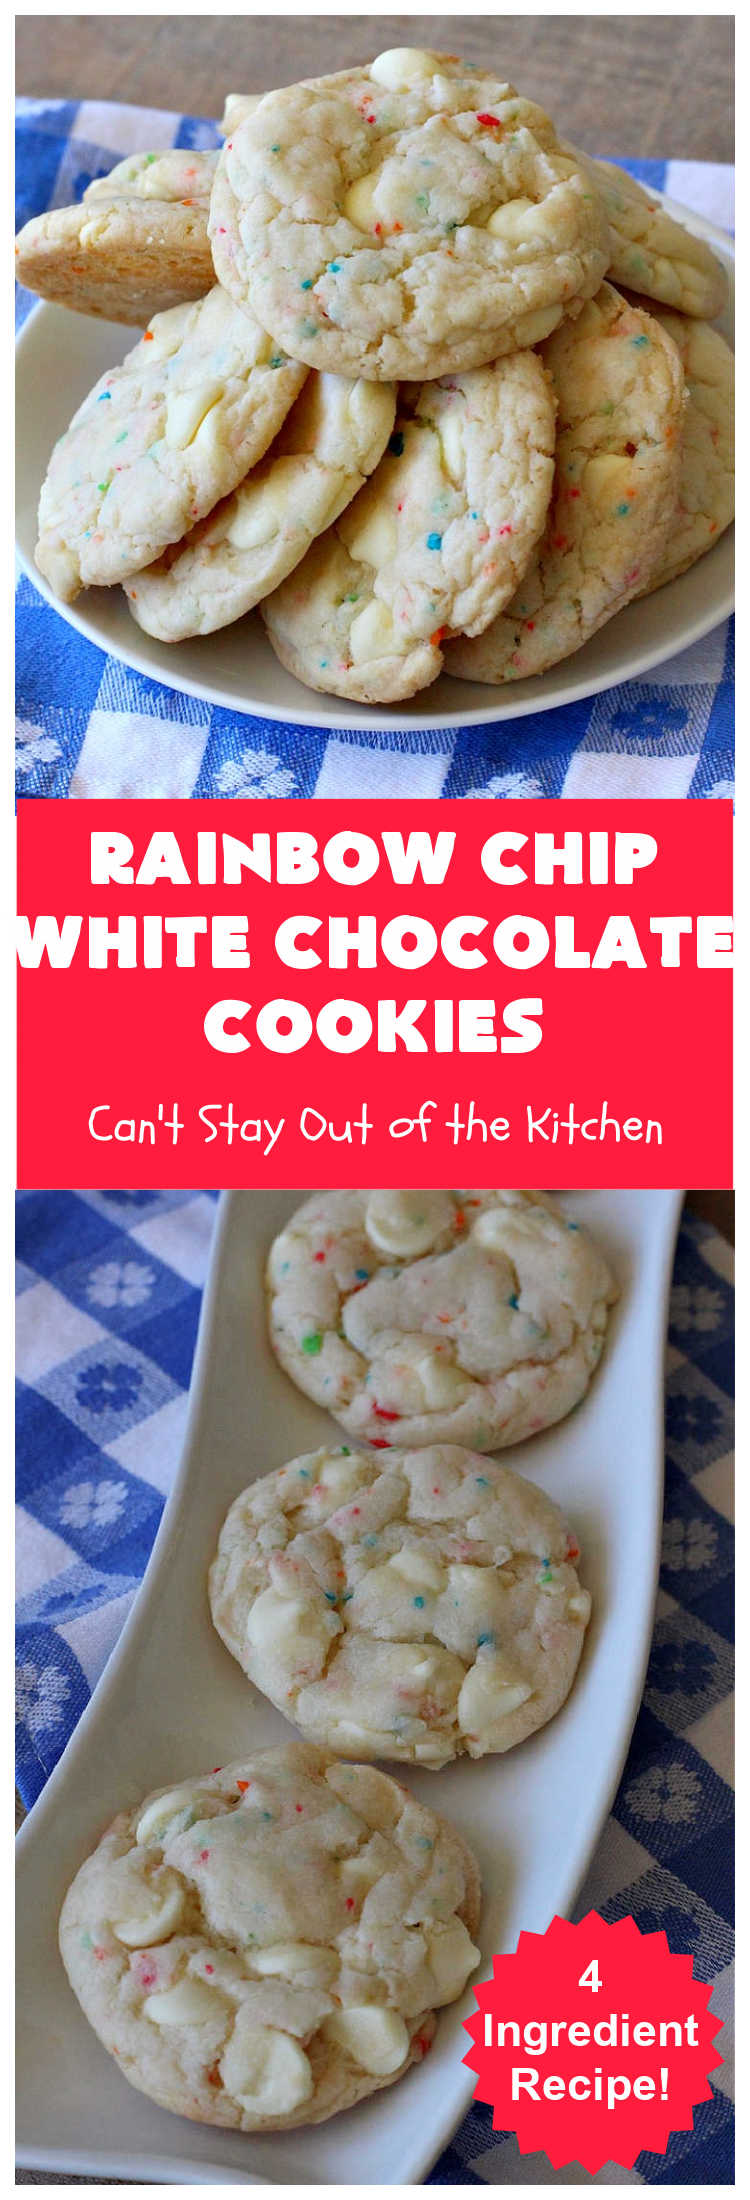 Rainbow Chip White Chocolate Cookies   Can't Stay Out of the Kitchen   these luscious 4-ingredient #cookies start with a #RainbowChipCakeMix so they're incredibly easy. #WhiteChocolateChips bump up the flavor and texture. They're perfect for birthday parties or any kind of kid-friendly function. You and your kids will enjoy every bite! #dessert #chocolate #Funfetti #RainbowChips #RainbowSprinkles #RainbowSprinkleDessert #ChocolateDessert #tailgating #holiday #BirthdayParties #HolidayBaking #WhiteChocolate #RainbowChipWhiteChocolateCookies